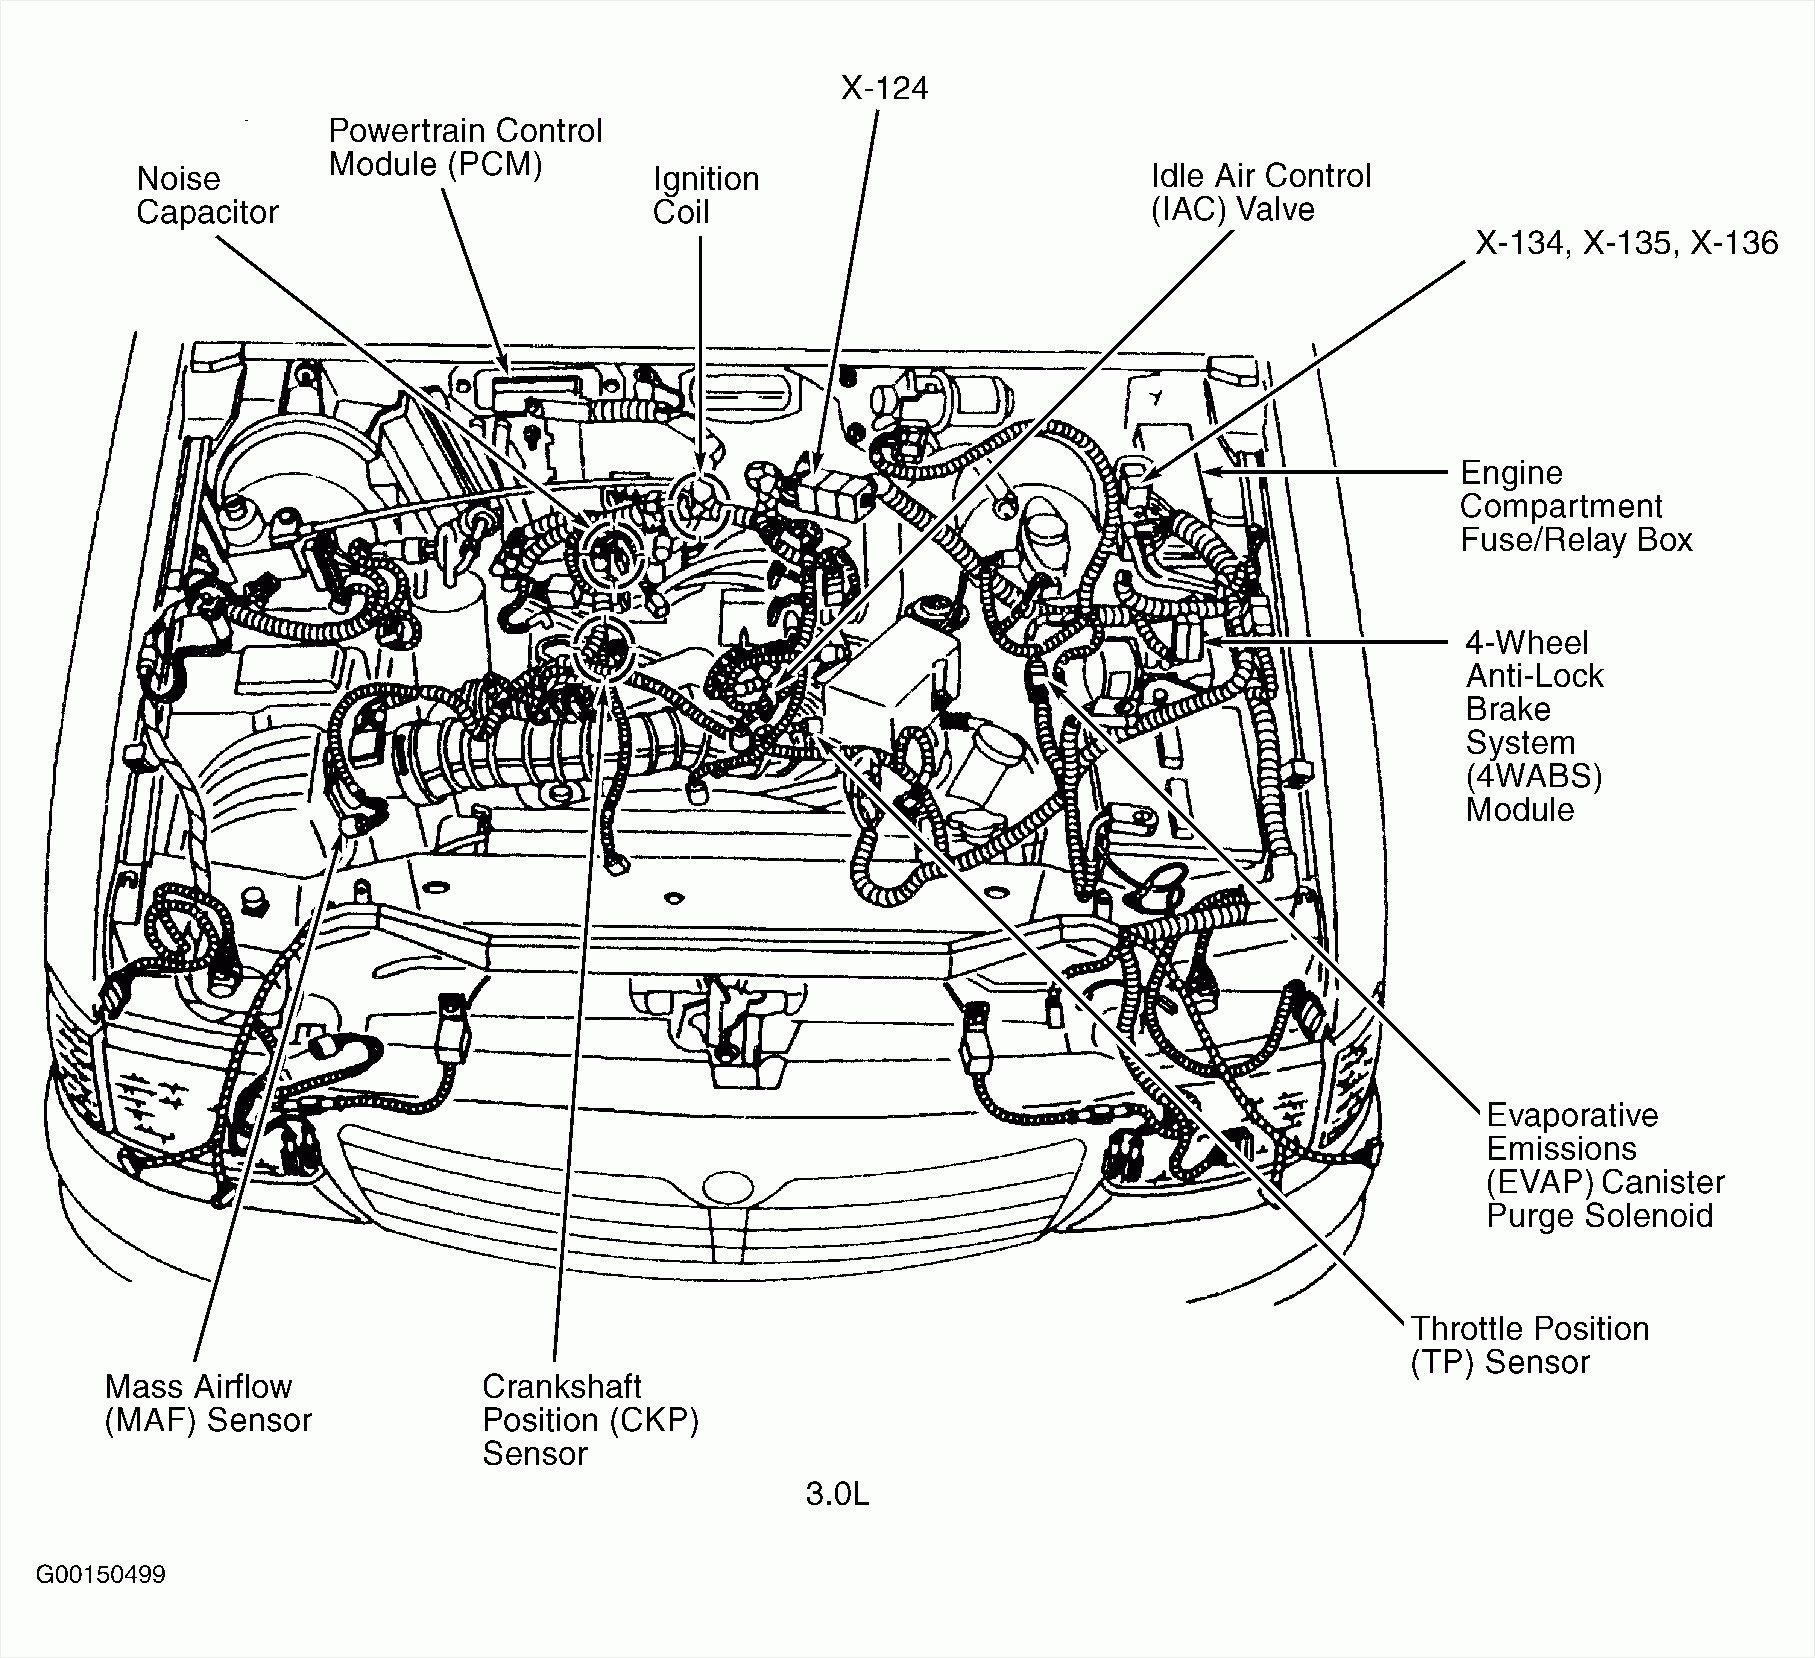 Engine Breakdown Diagram toyota Engine Schematic Diagrams Wiring Diagram Imp Of Engine Breakdown Diagram Energies Free Full Text